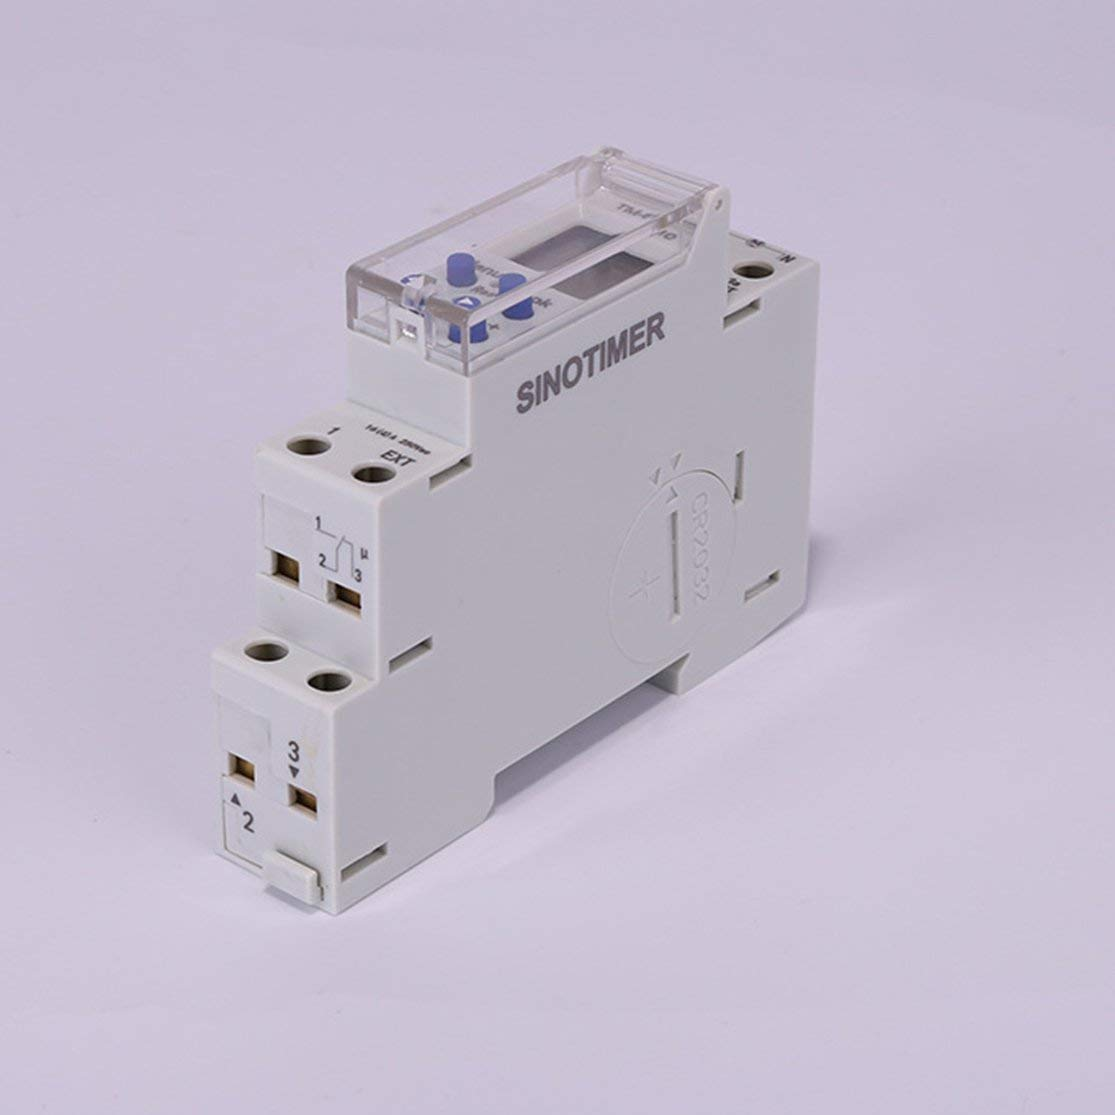 Color:White 110V TM610 1P 18MM M/ódulo /único Riel DIN LCD Digital 7 d/ías 24 horas Interruptor temporizador programable Kaemma SINOTIMER 220V